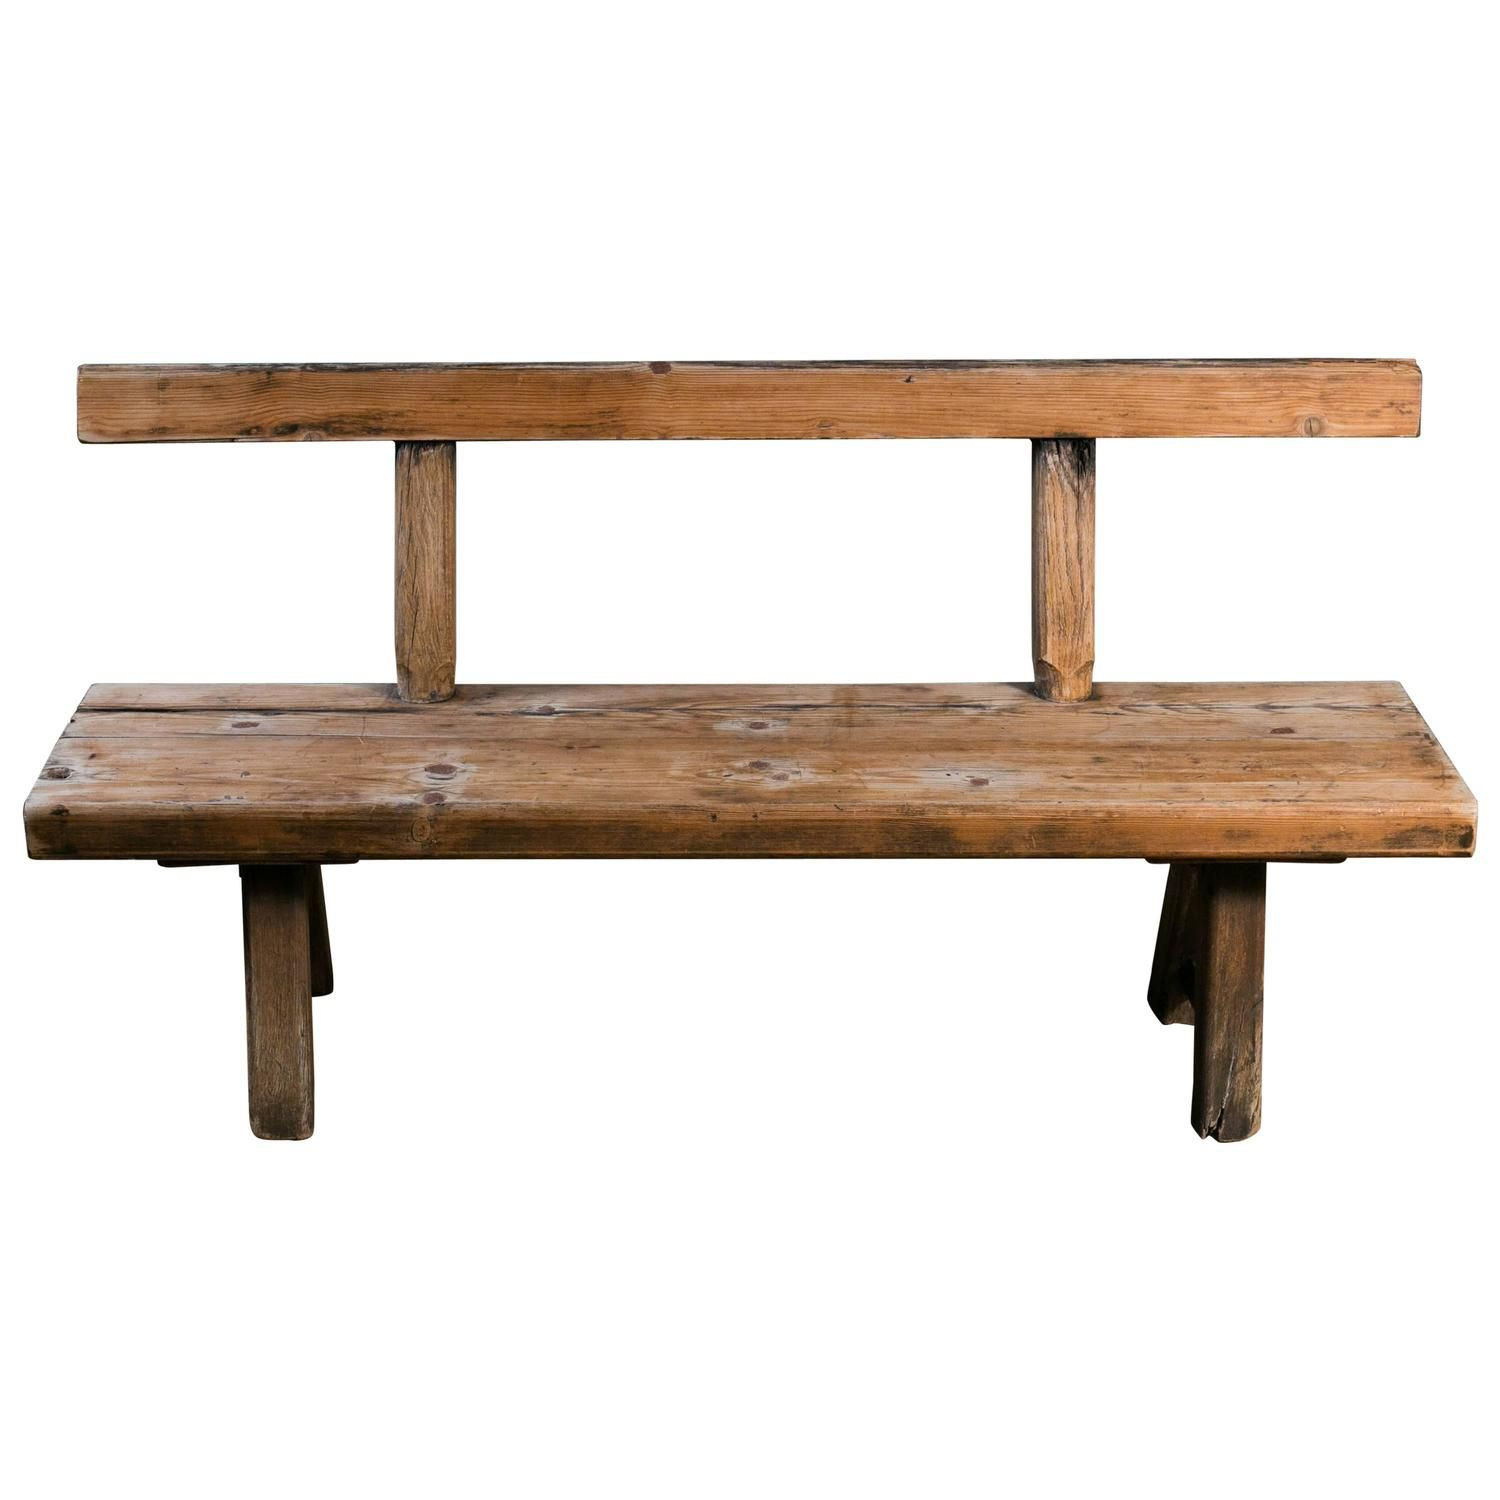 Enjoyable Long Primitive Wooden Bench With Back My 1Stdibs Favorites Lamtechconsult Wood Chair Design Ideas Lamtechconsultcom